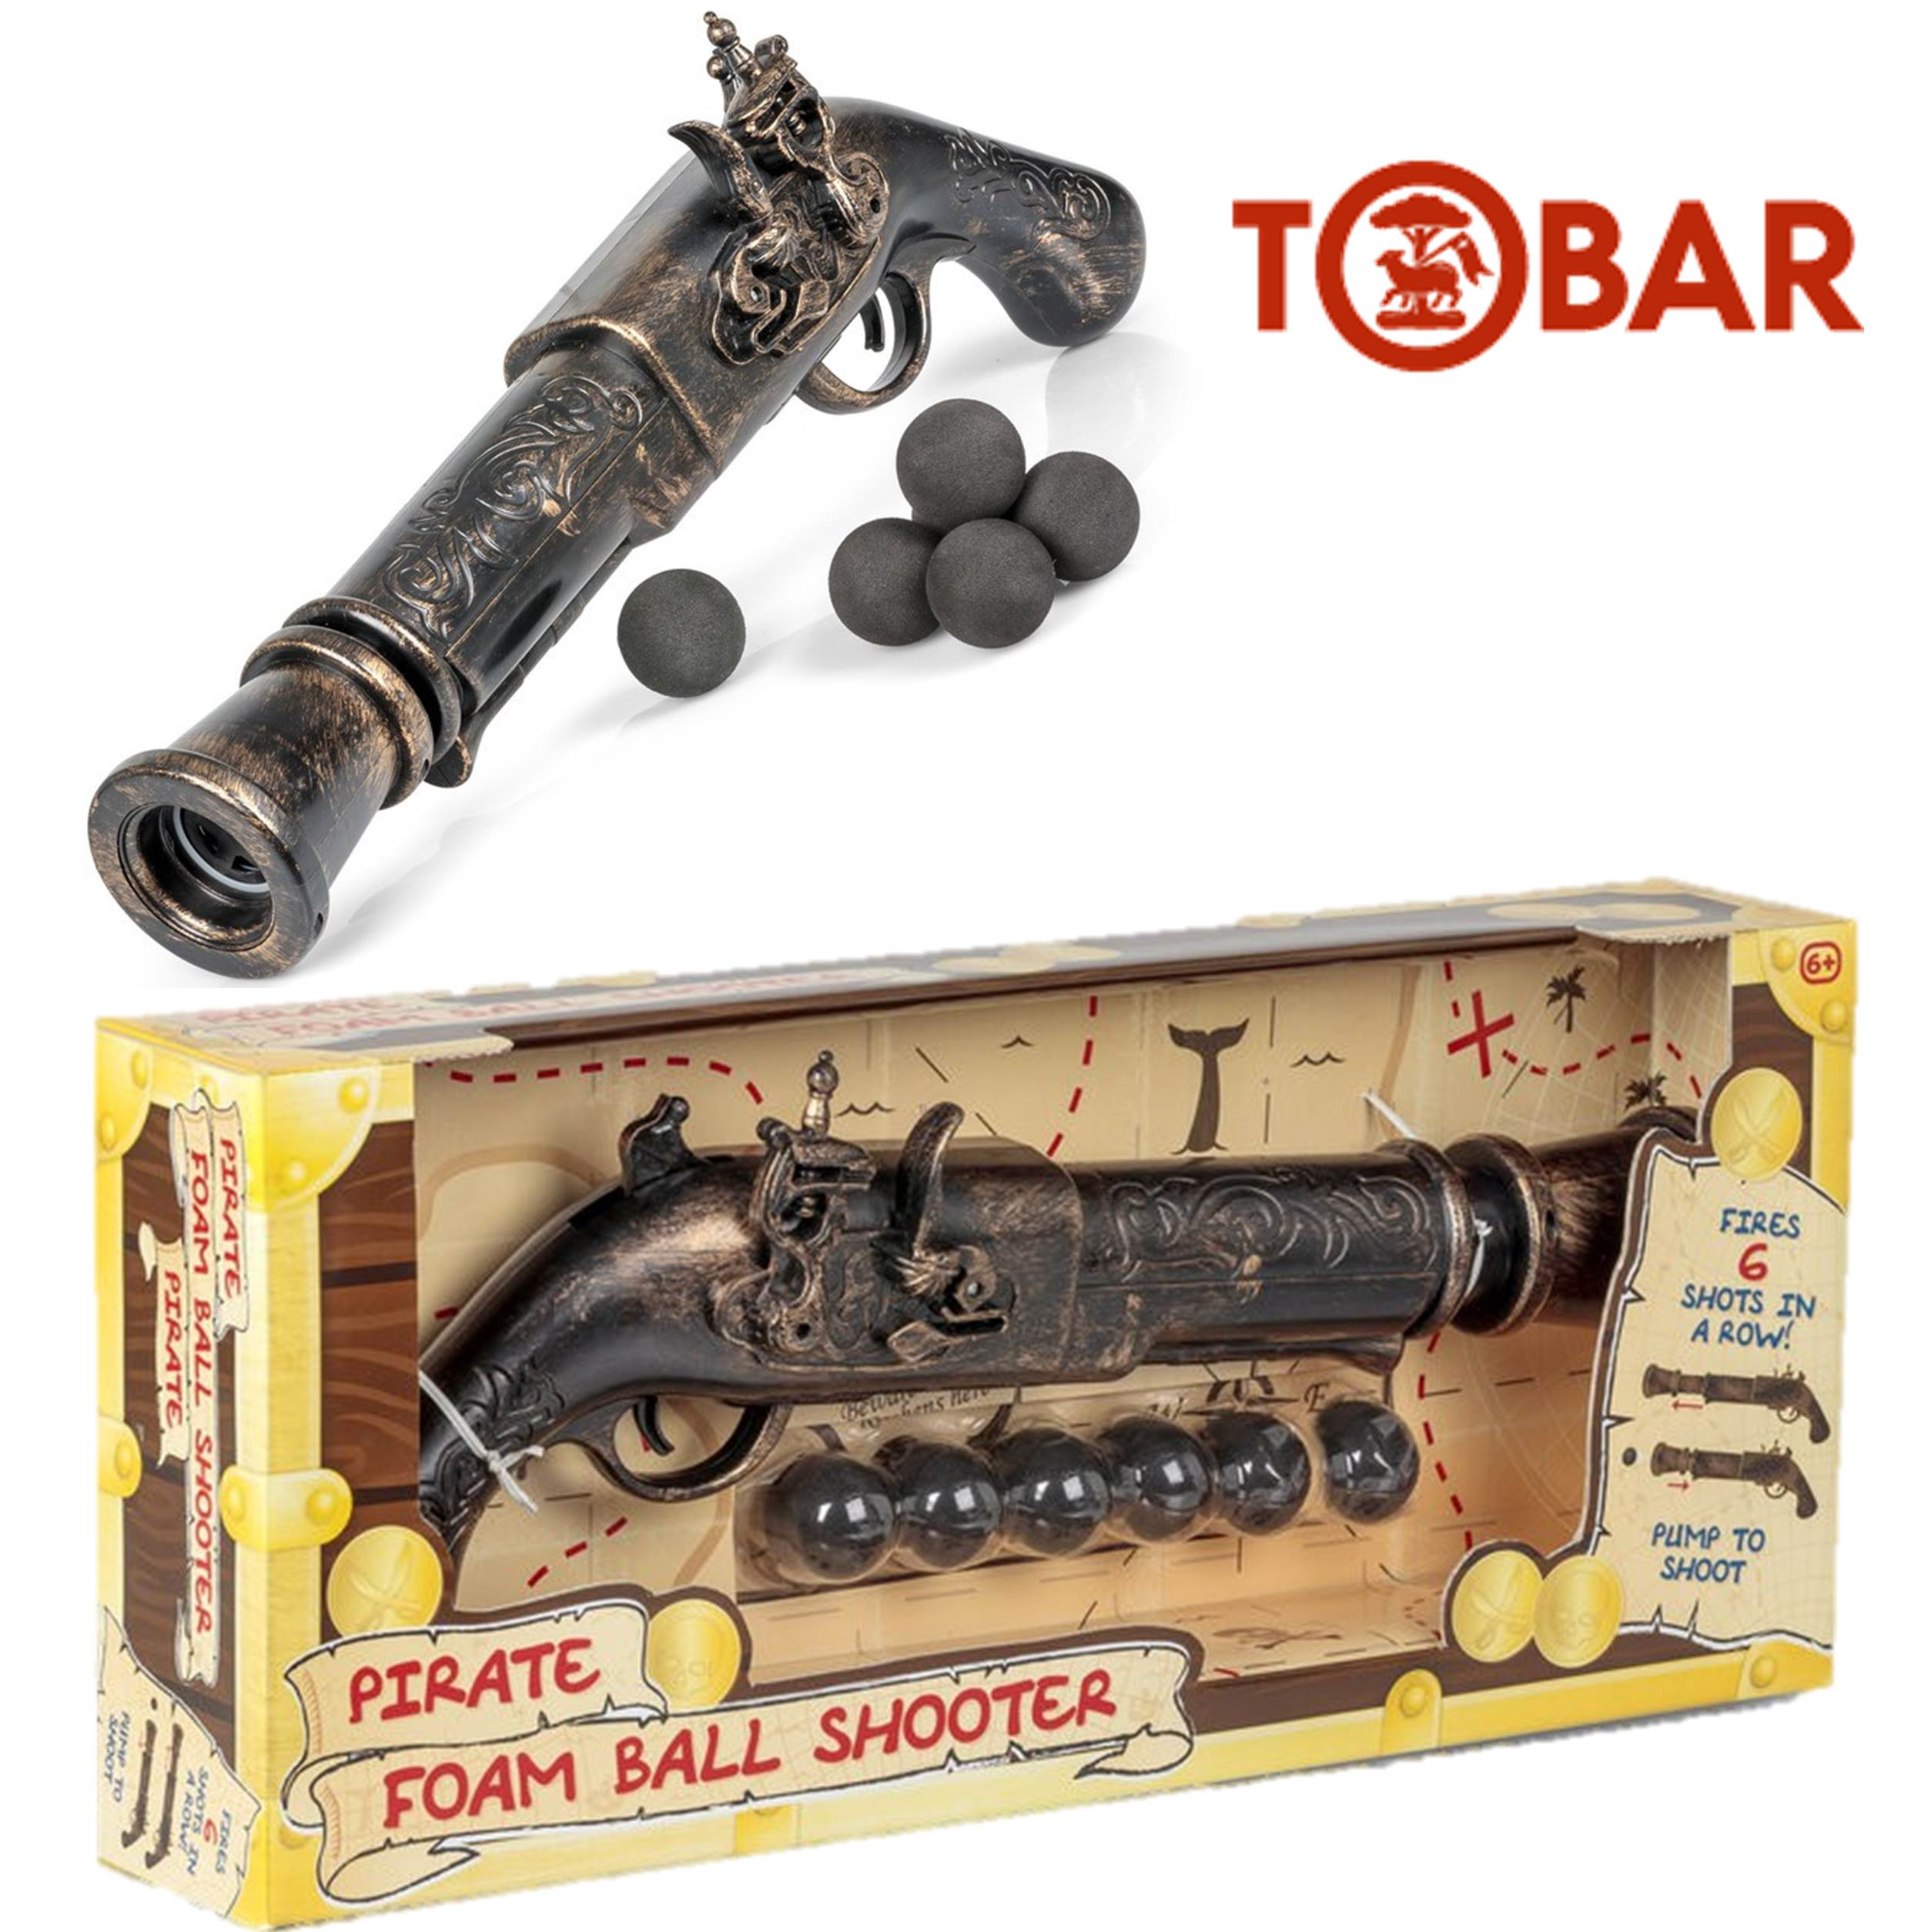 Pirate Foam Ball Shooter